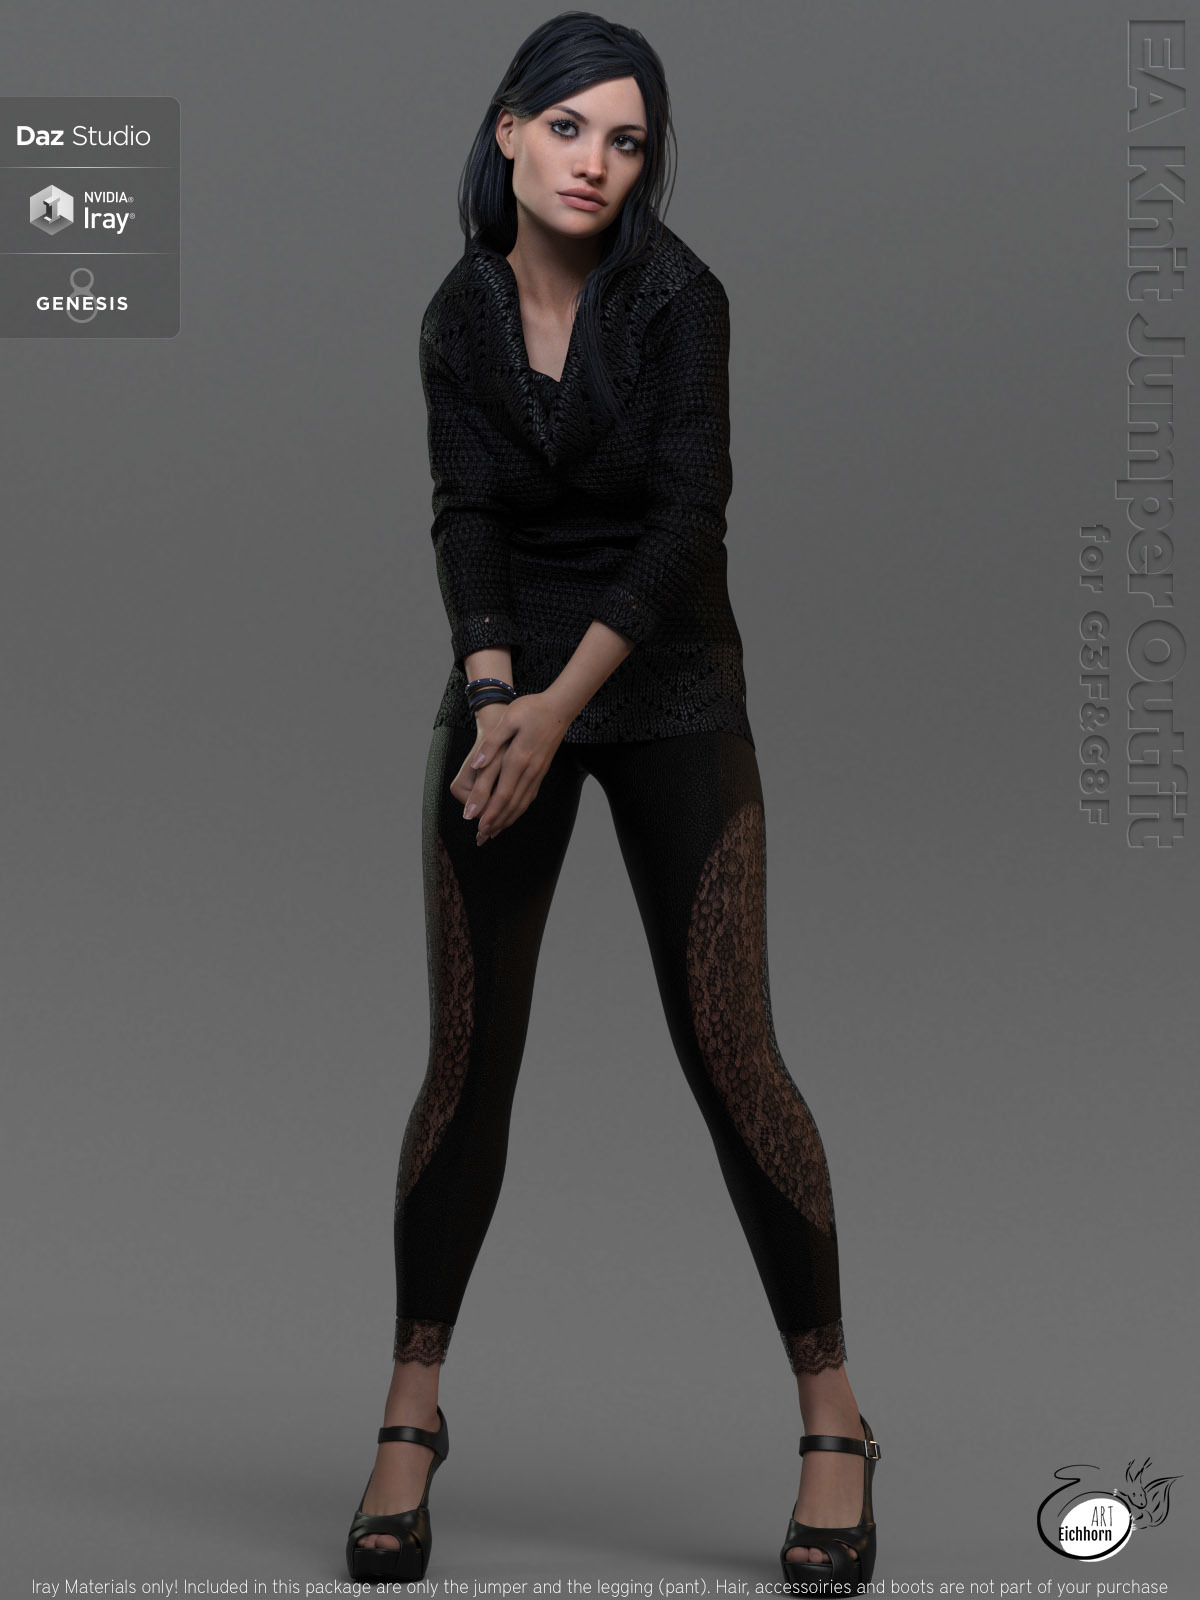 EA dforce Knit Jumper Outfit for Genesis 8 Female  by EichhornArt